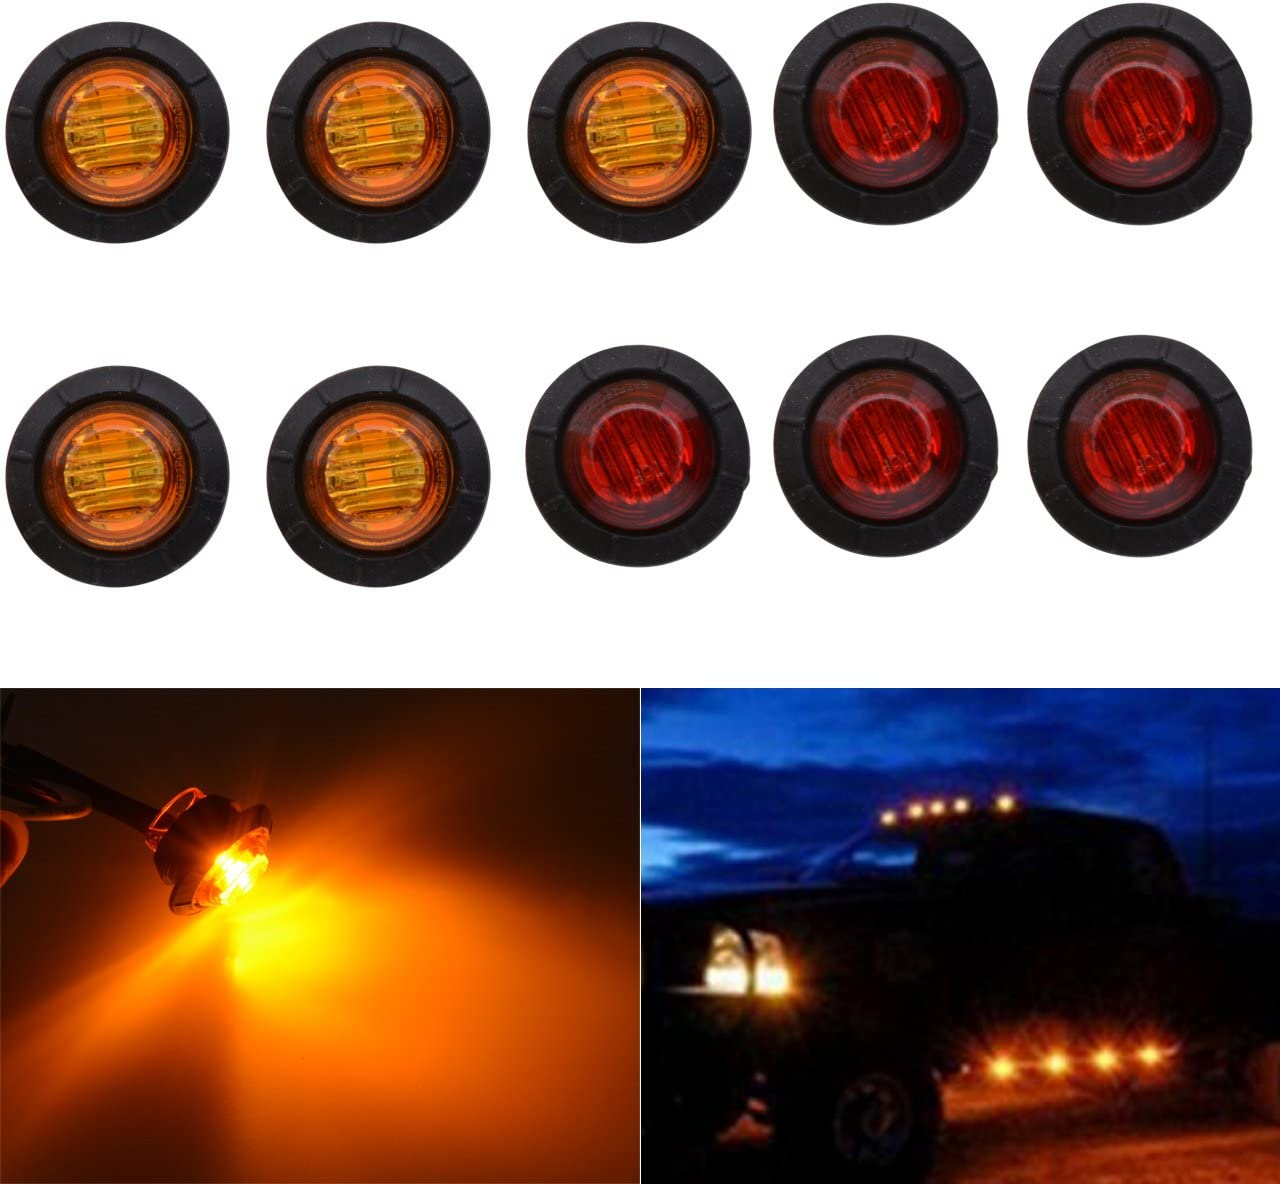 TUINCYN 3//4 Inch Amber Round LED Indicator Light Bulbs Bullet Shaped Front Rear Side Markers Marker Light Tail Light Used for Car Trunk. Pack of 10